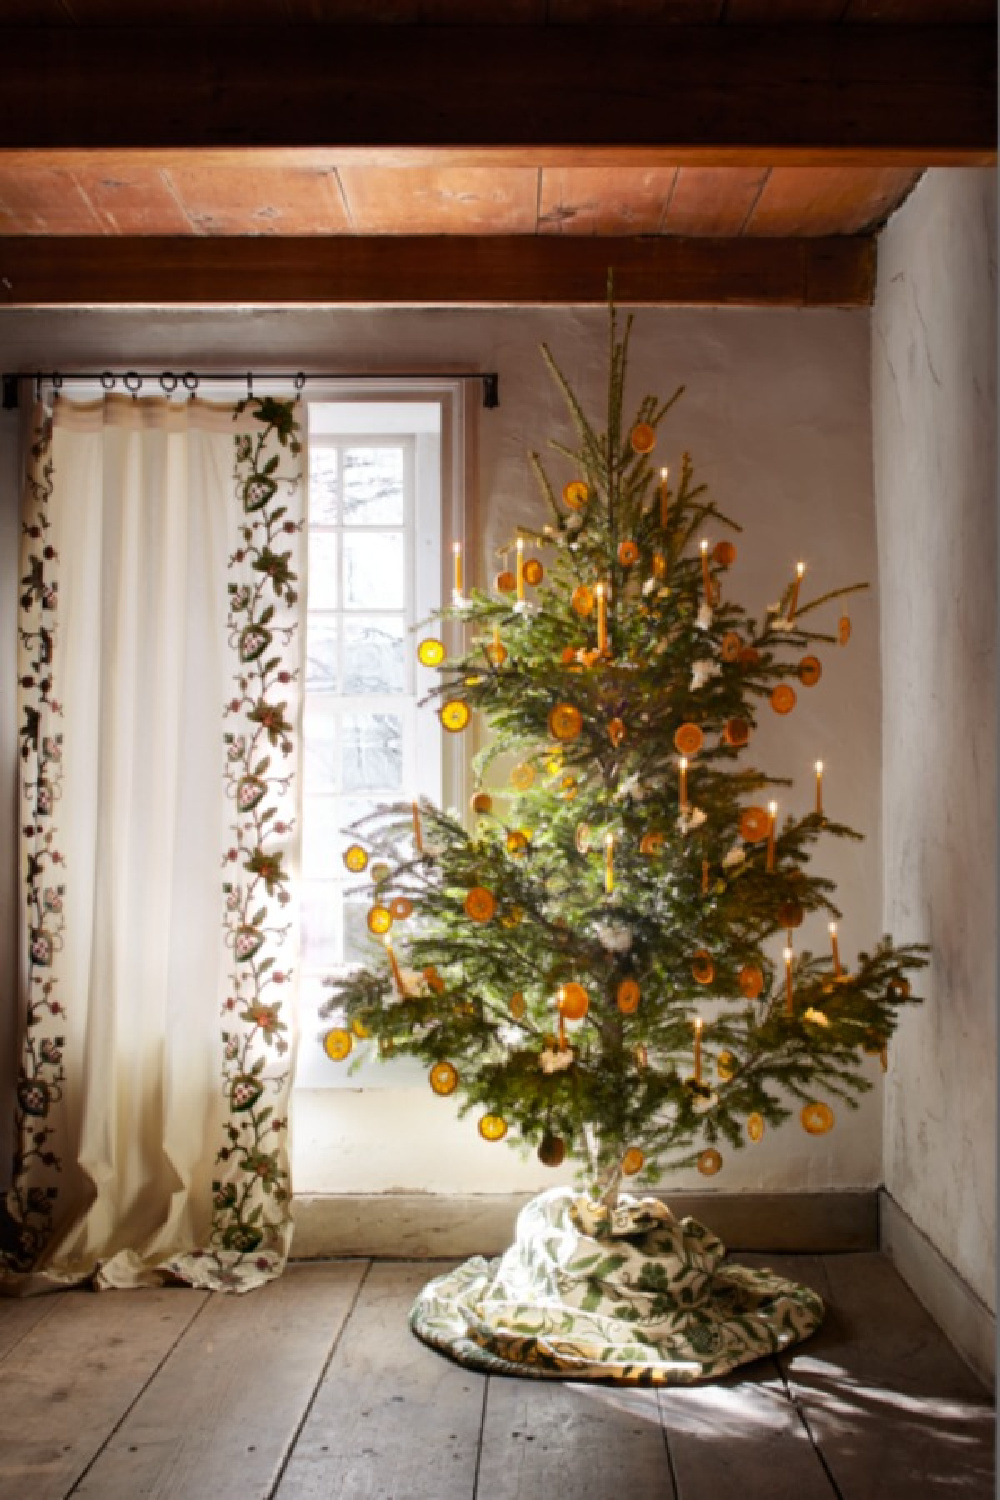 Dried orange garland on a Christmas tree. Floral designer Michael Putnam reimagined holiday décor with fresh blooms and artful twists on traditional topiaries, garlands, and wreaths within this 18th-century New York farmhouse - Veranda. #christmasdecor #christmastrees #scandinavian